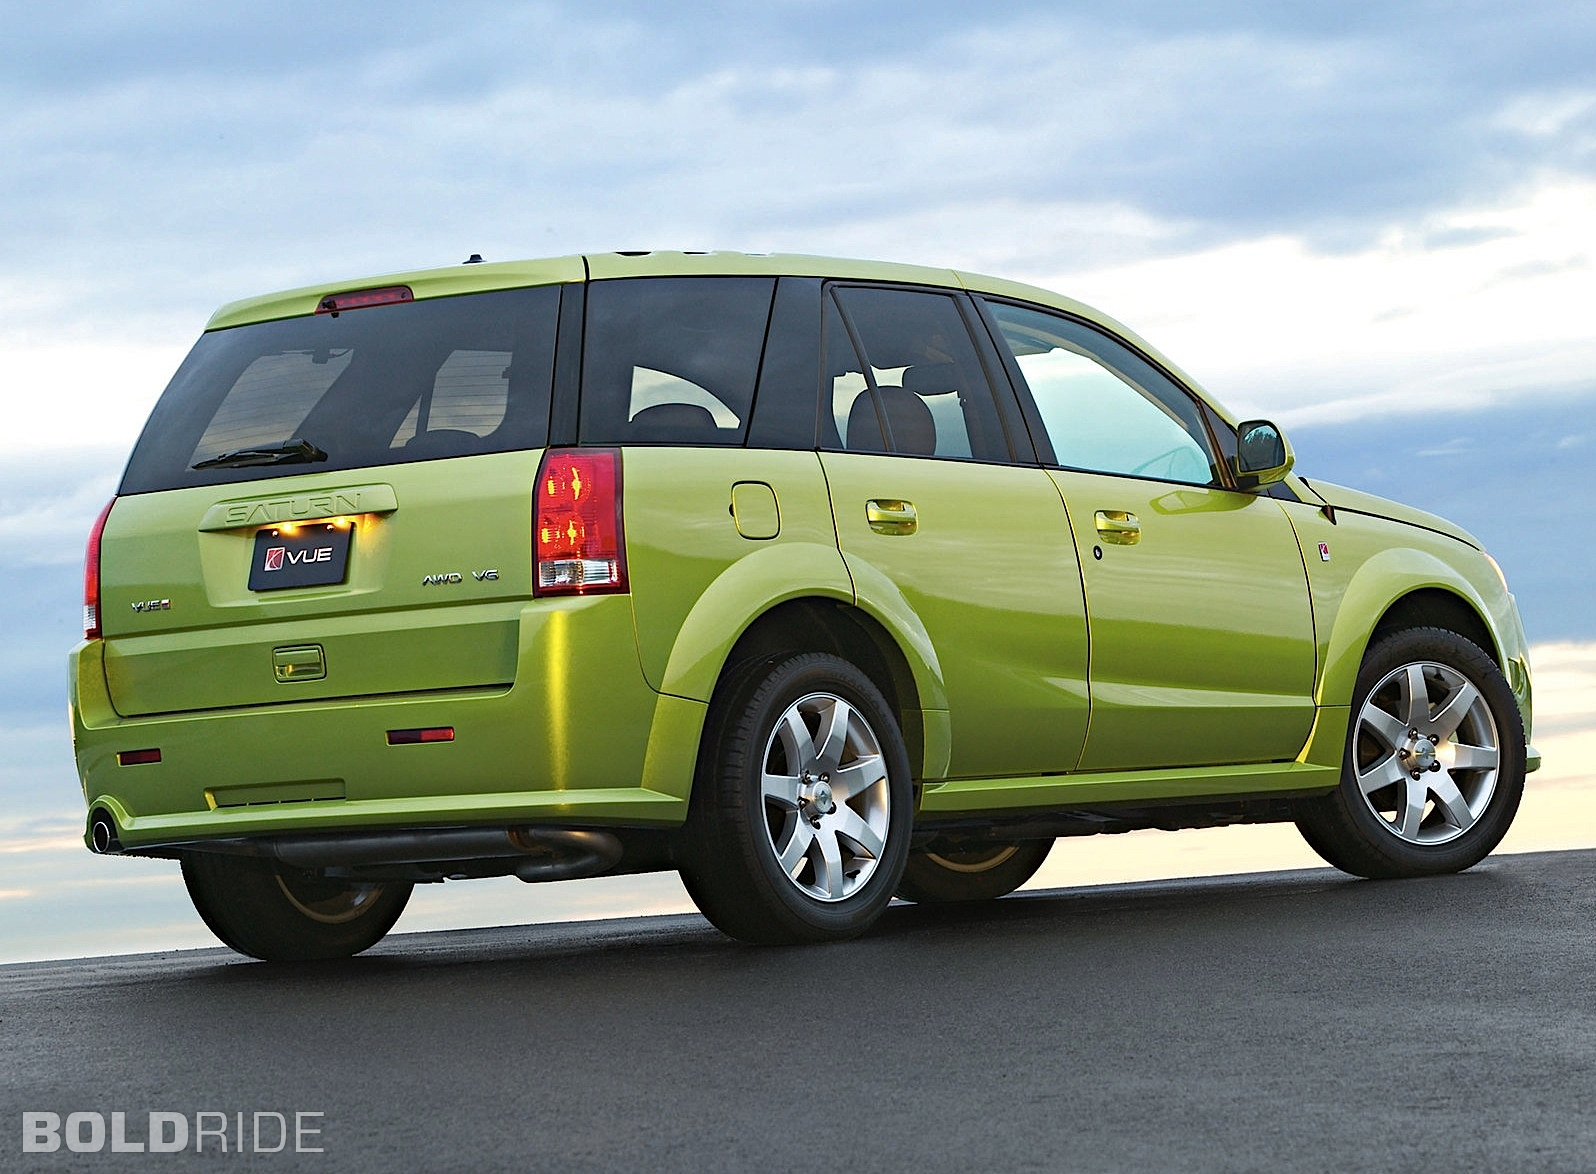 Saturn saturn 2004 : 2004 Saturn VUE - Information and photos - ZombieDrive